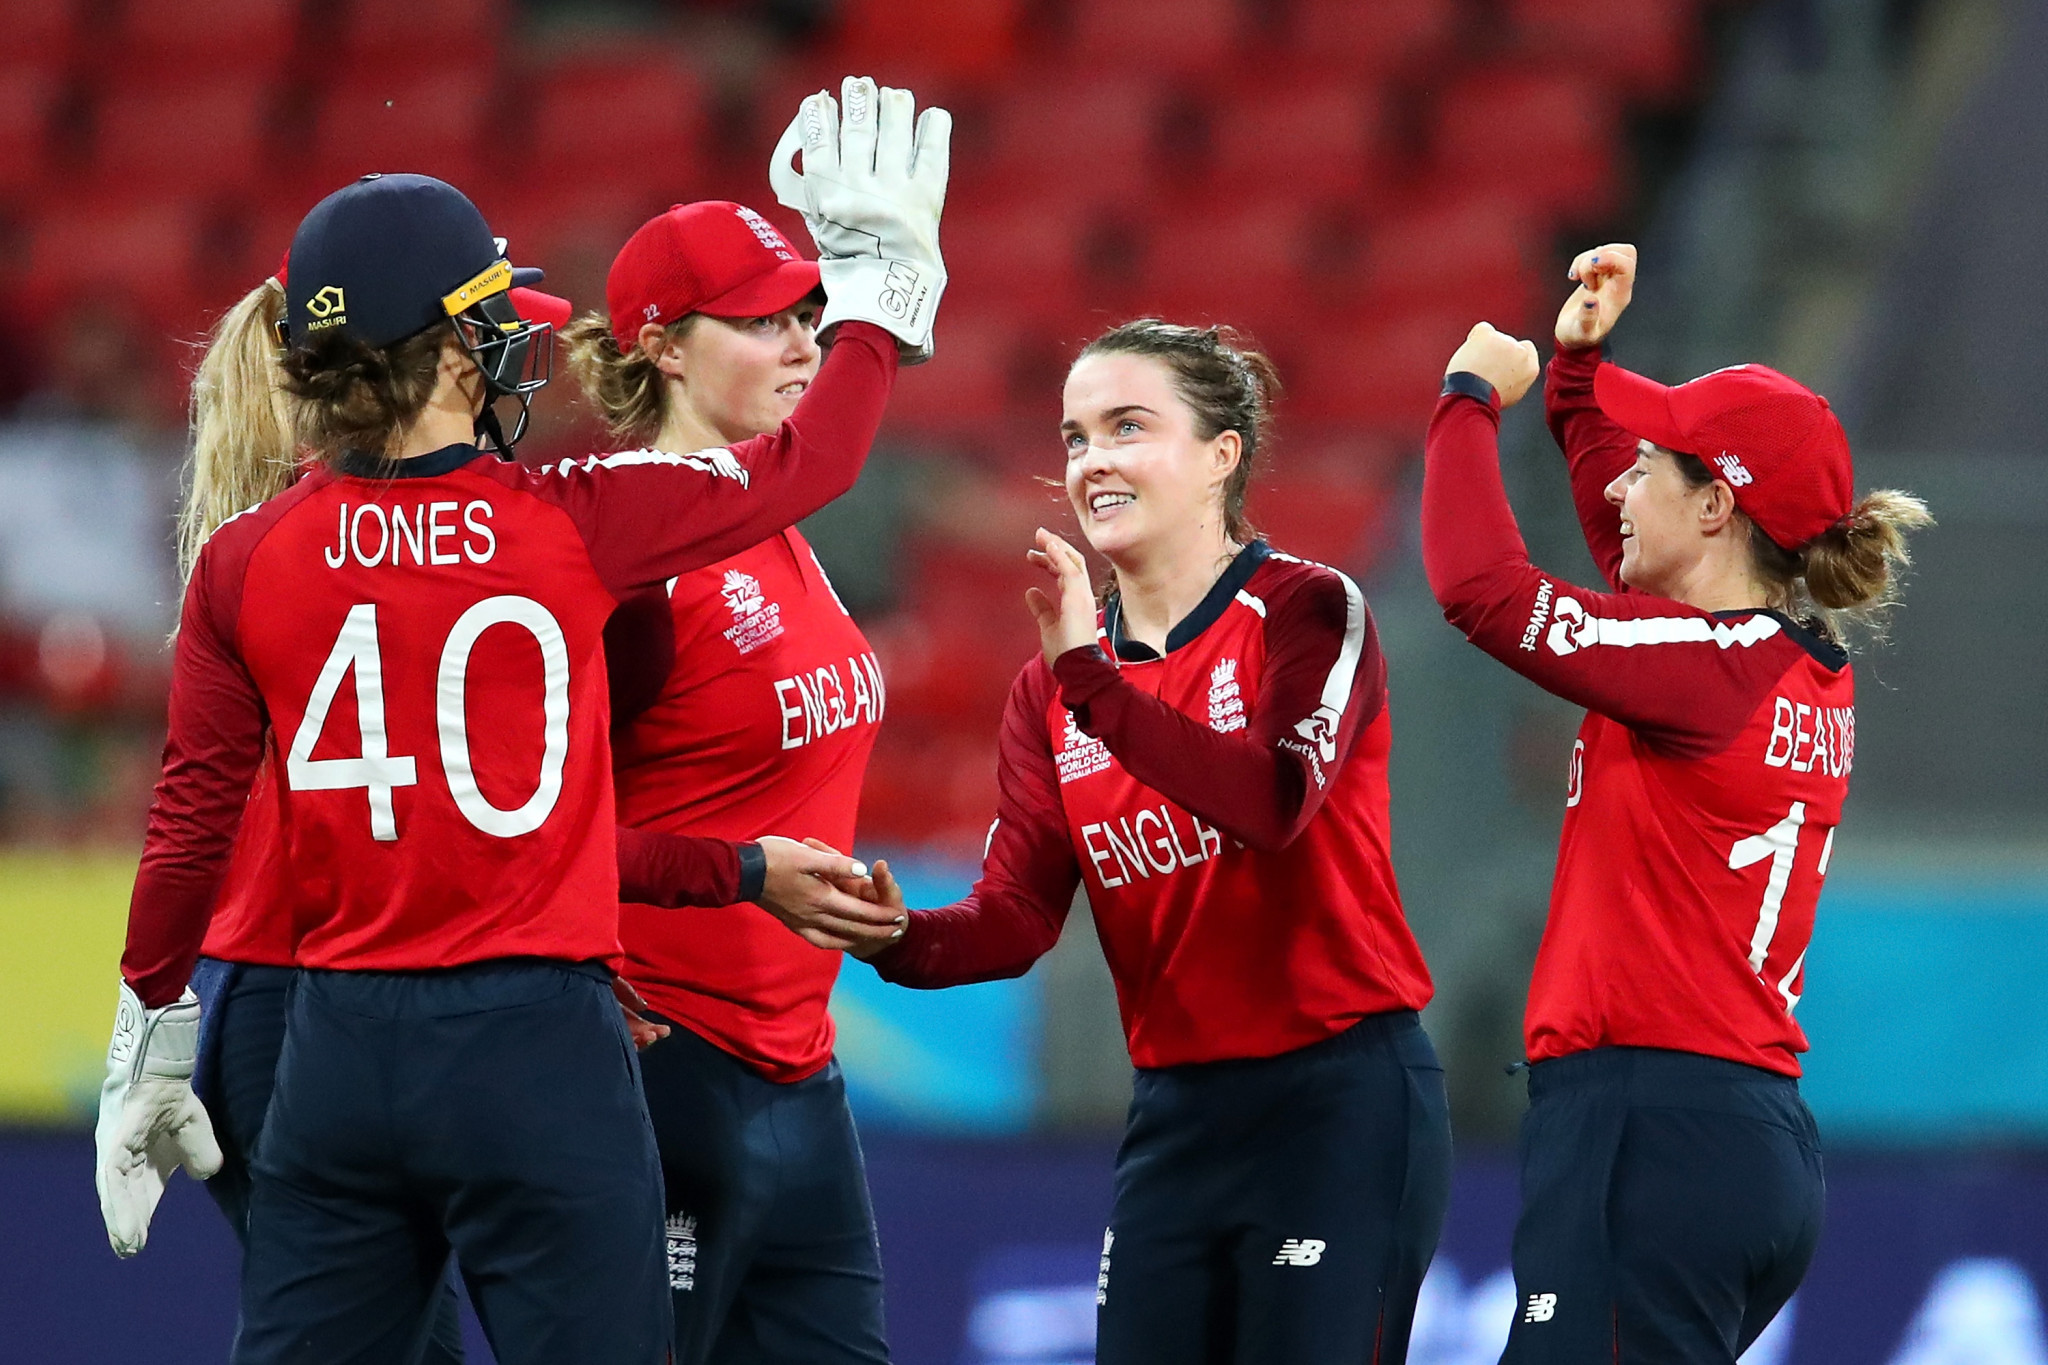 South Africa and England reach semi-finals of ICC Women's T20 World Cup in Australia